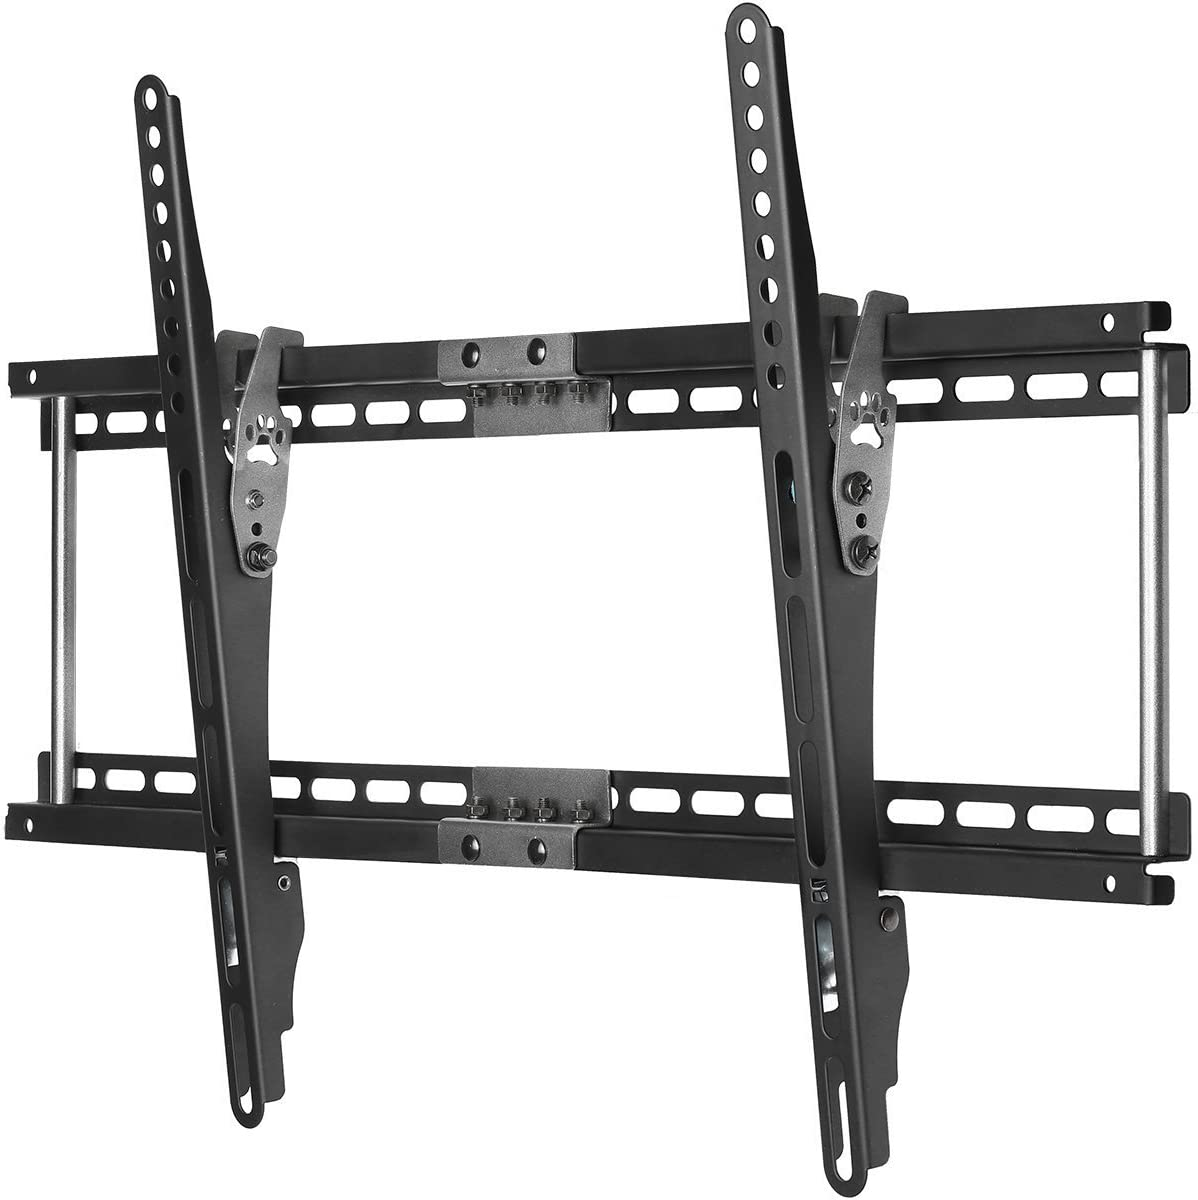 Black Adjustable Tilt Tilting Wall Mount Bracket for Sony NSX40GT1 NSX-40GT1 40 inch LED HDTV TV Television